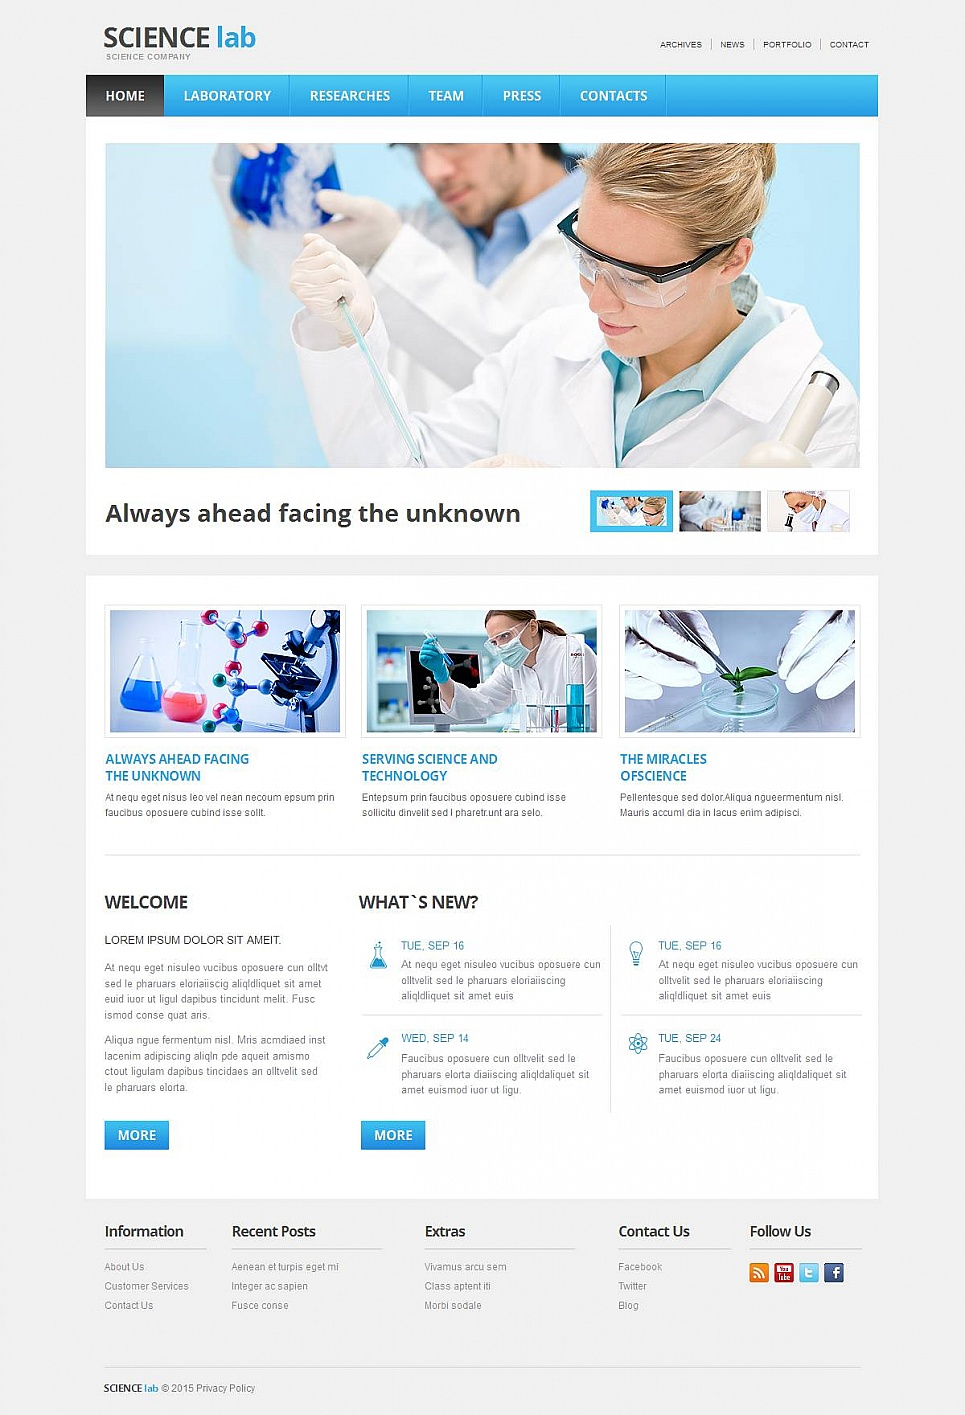 Science Laboratory Website Design - image